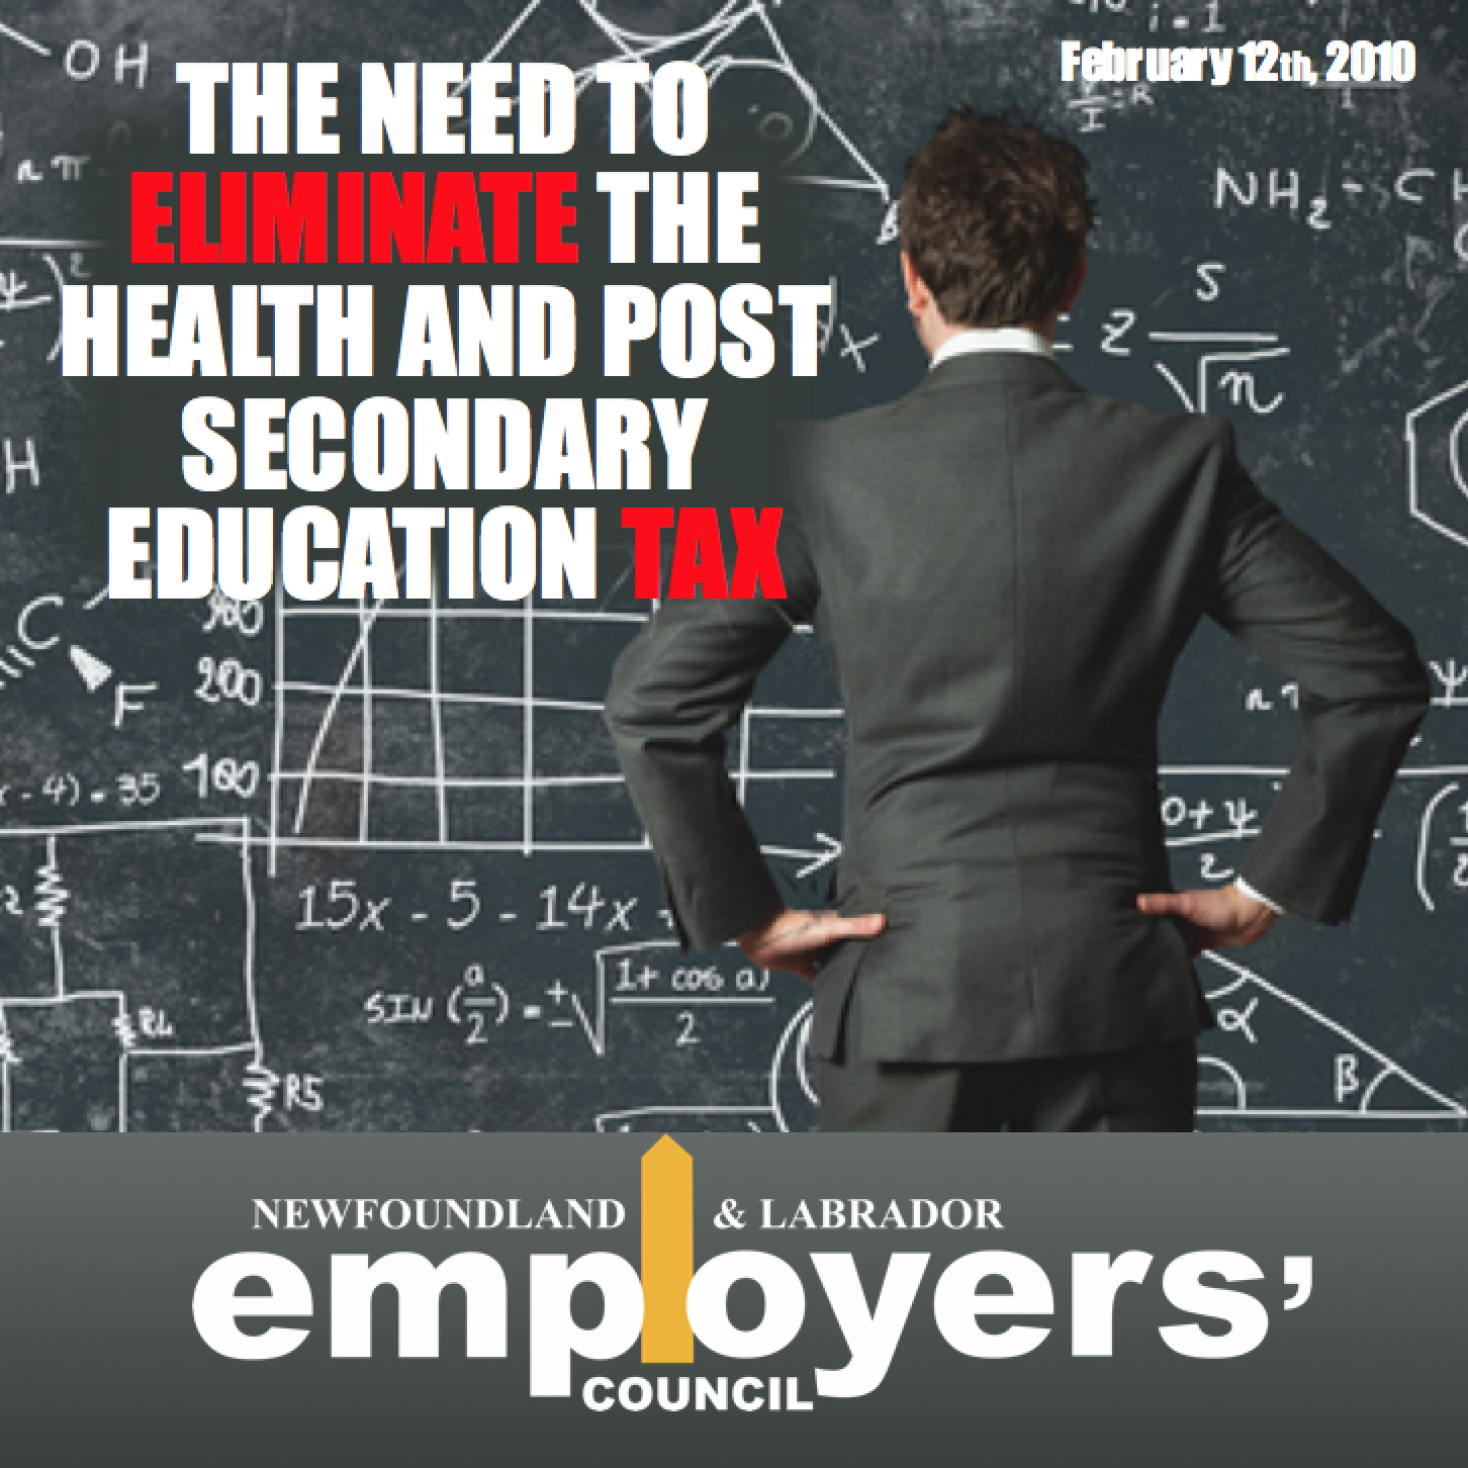 Need to Eliminate Health and Post Secondary Education Tax